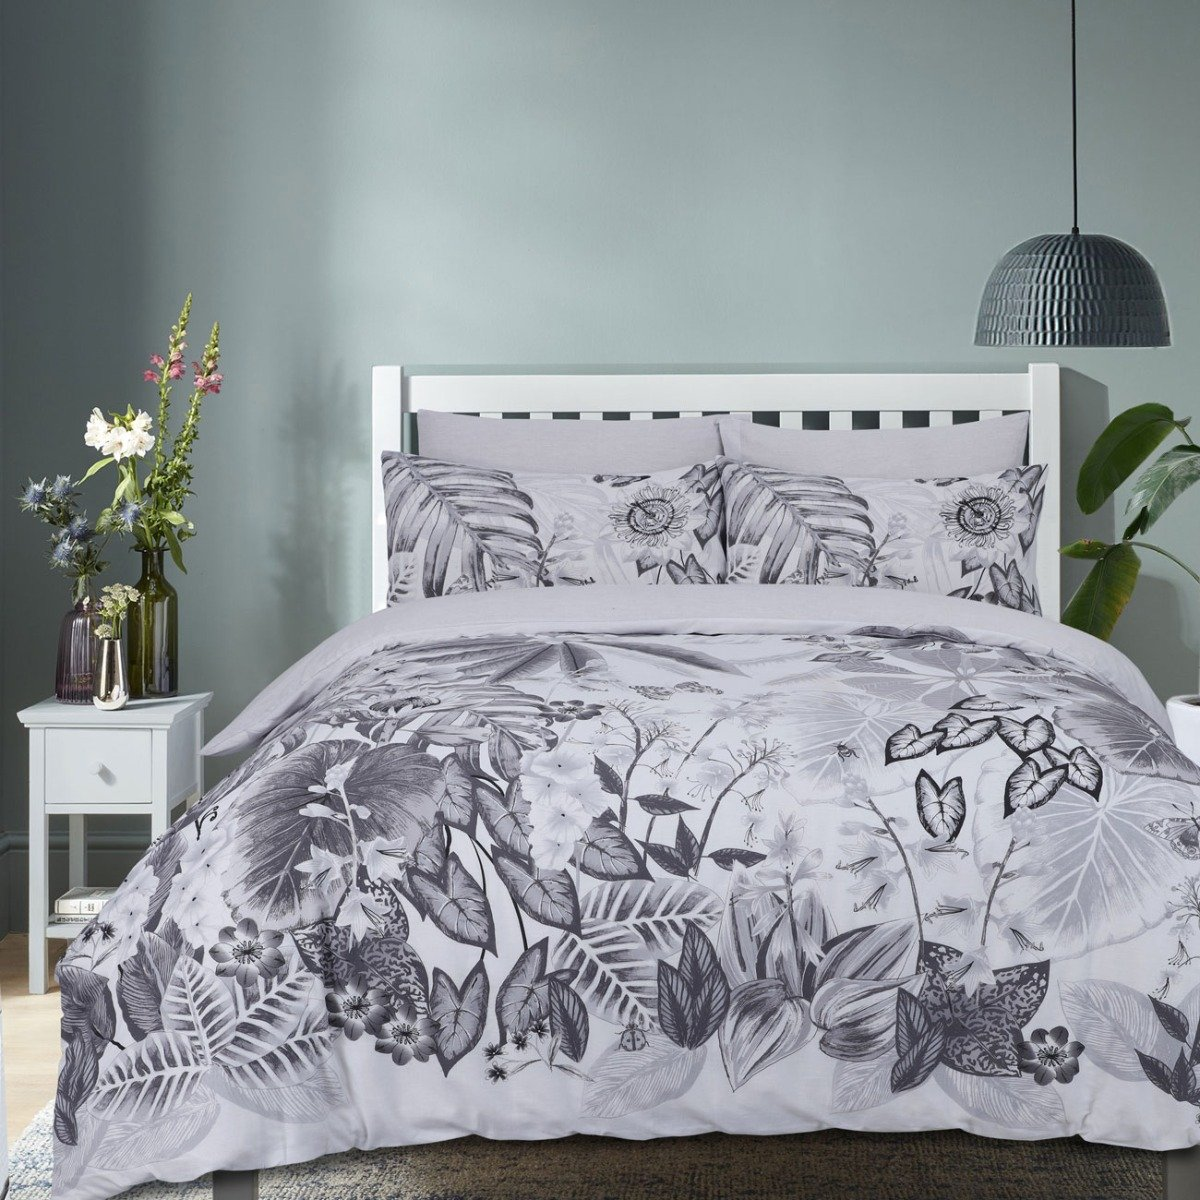 Botanical Tropic Grey Bedding - Reversible Duvet Cover and Pillowcase Set